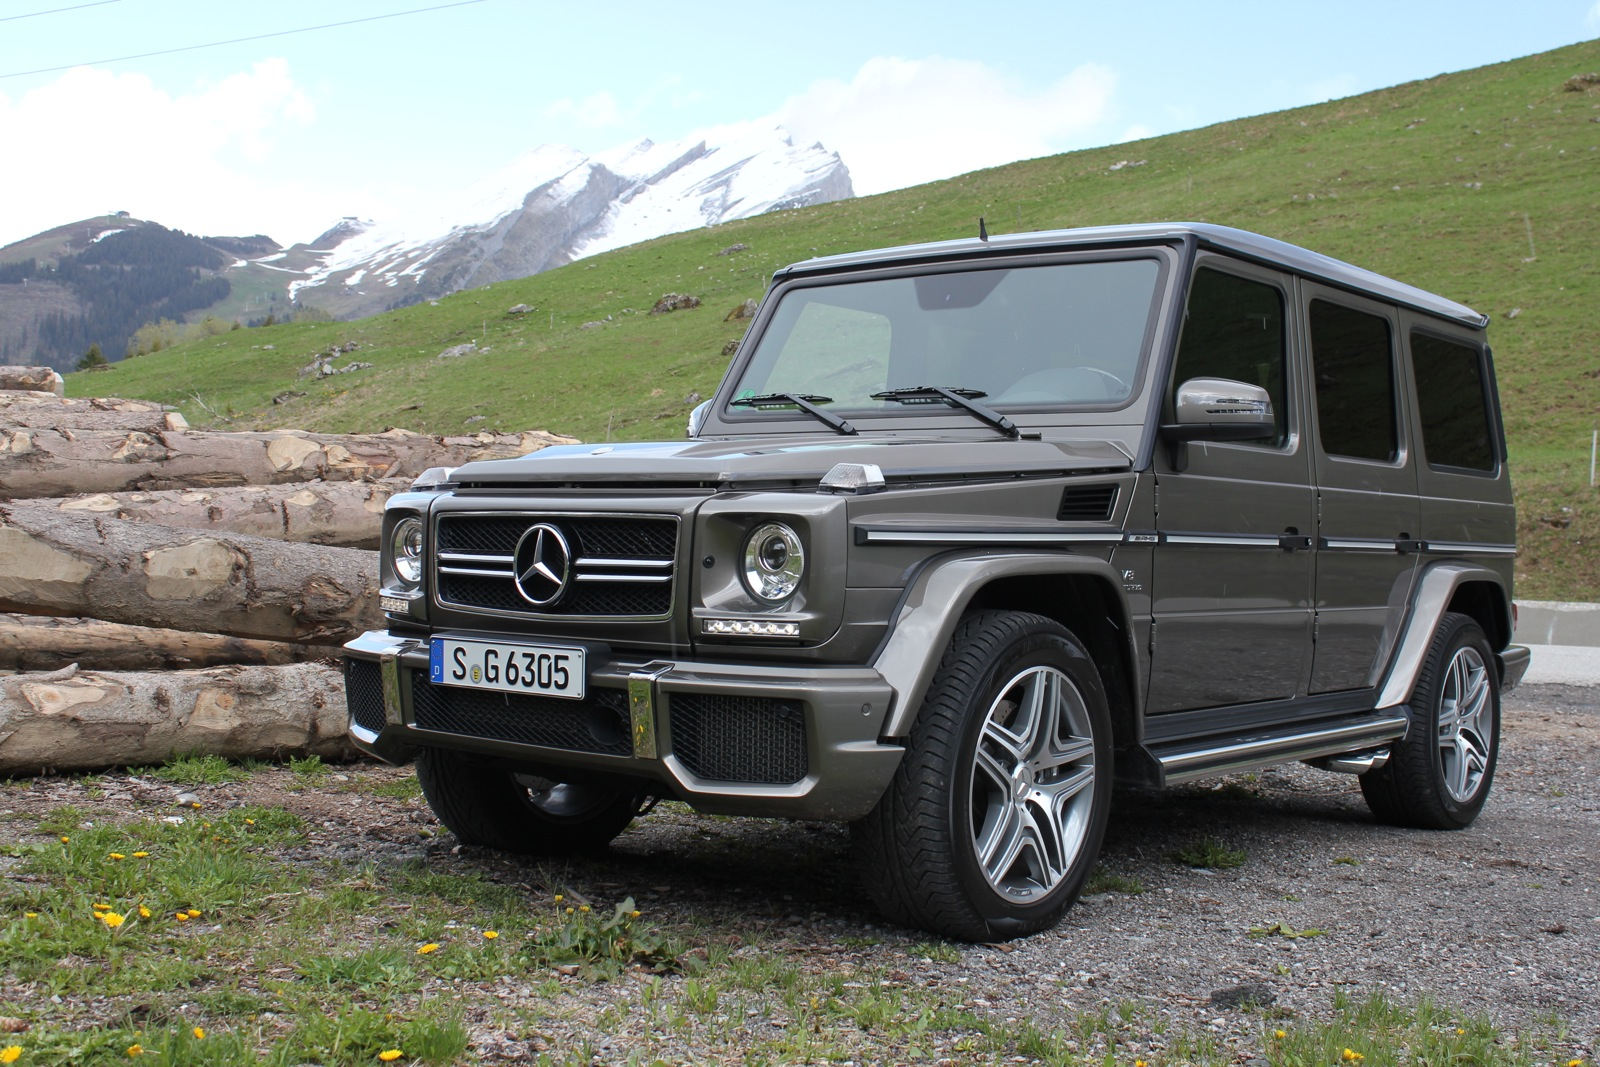 mercedes-benz g-class to live through 2015--and beyond?